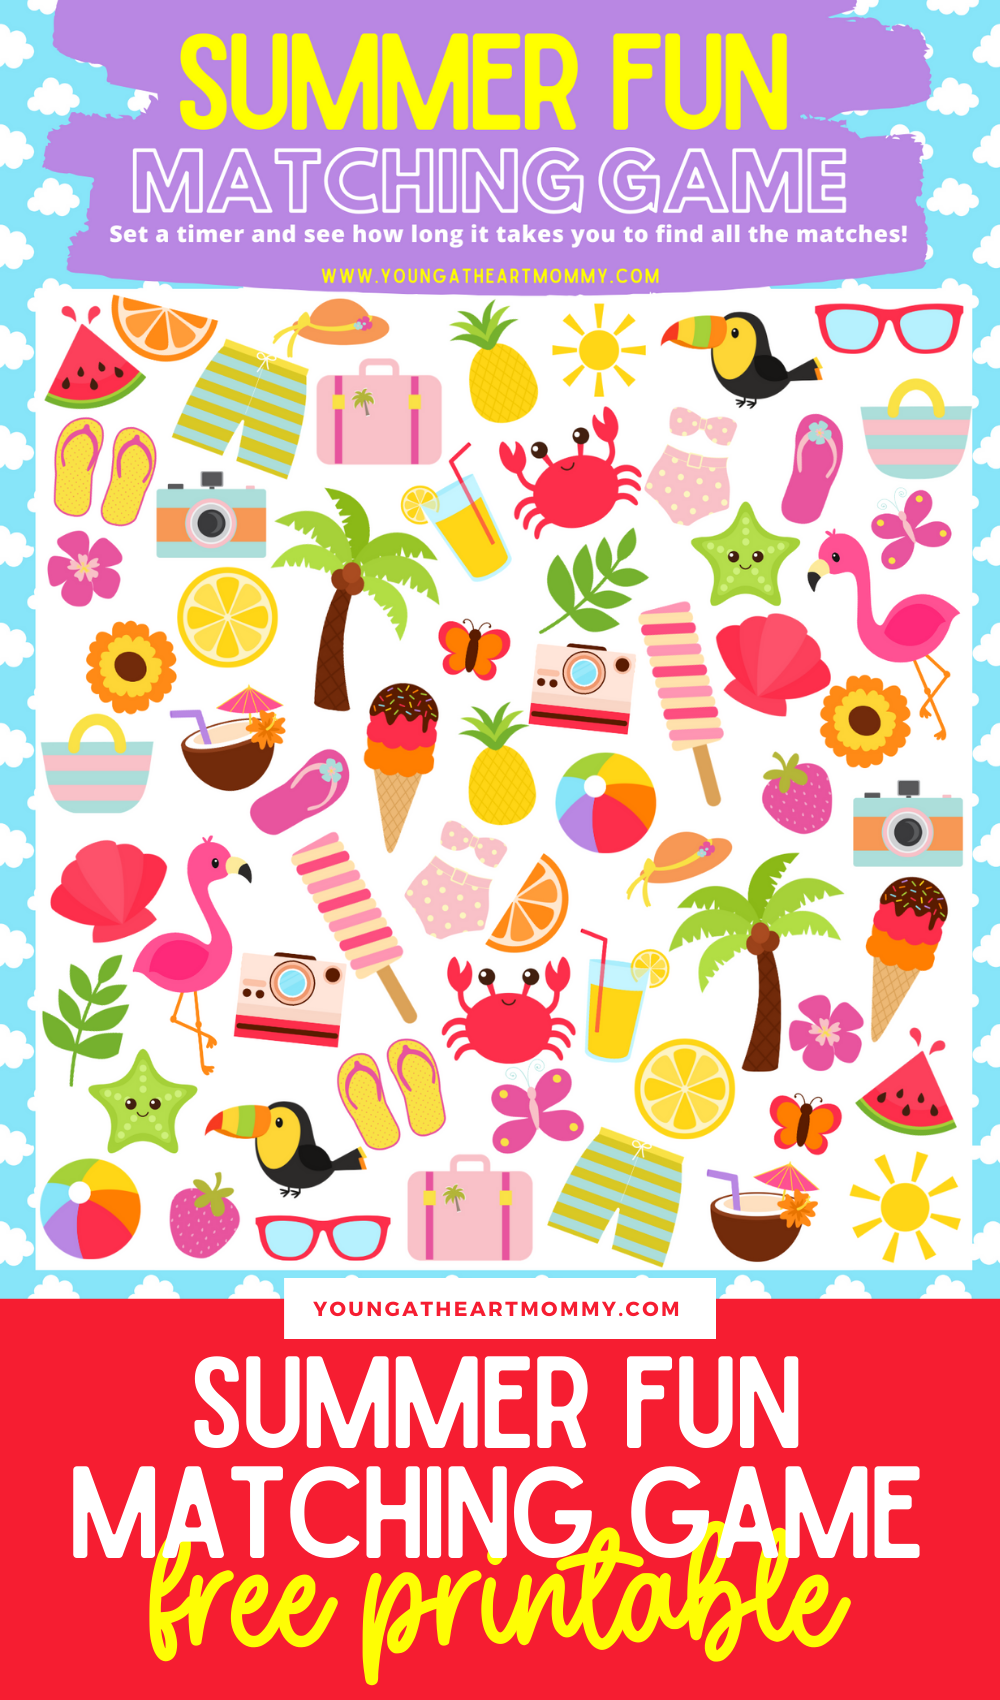 Summertime Matching Game Printable For Kids